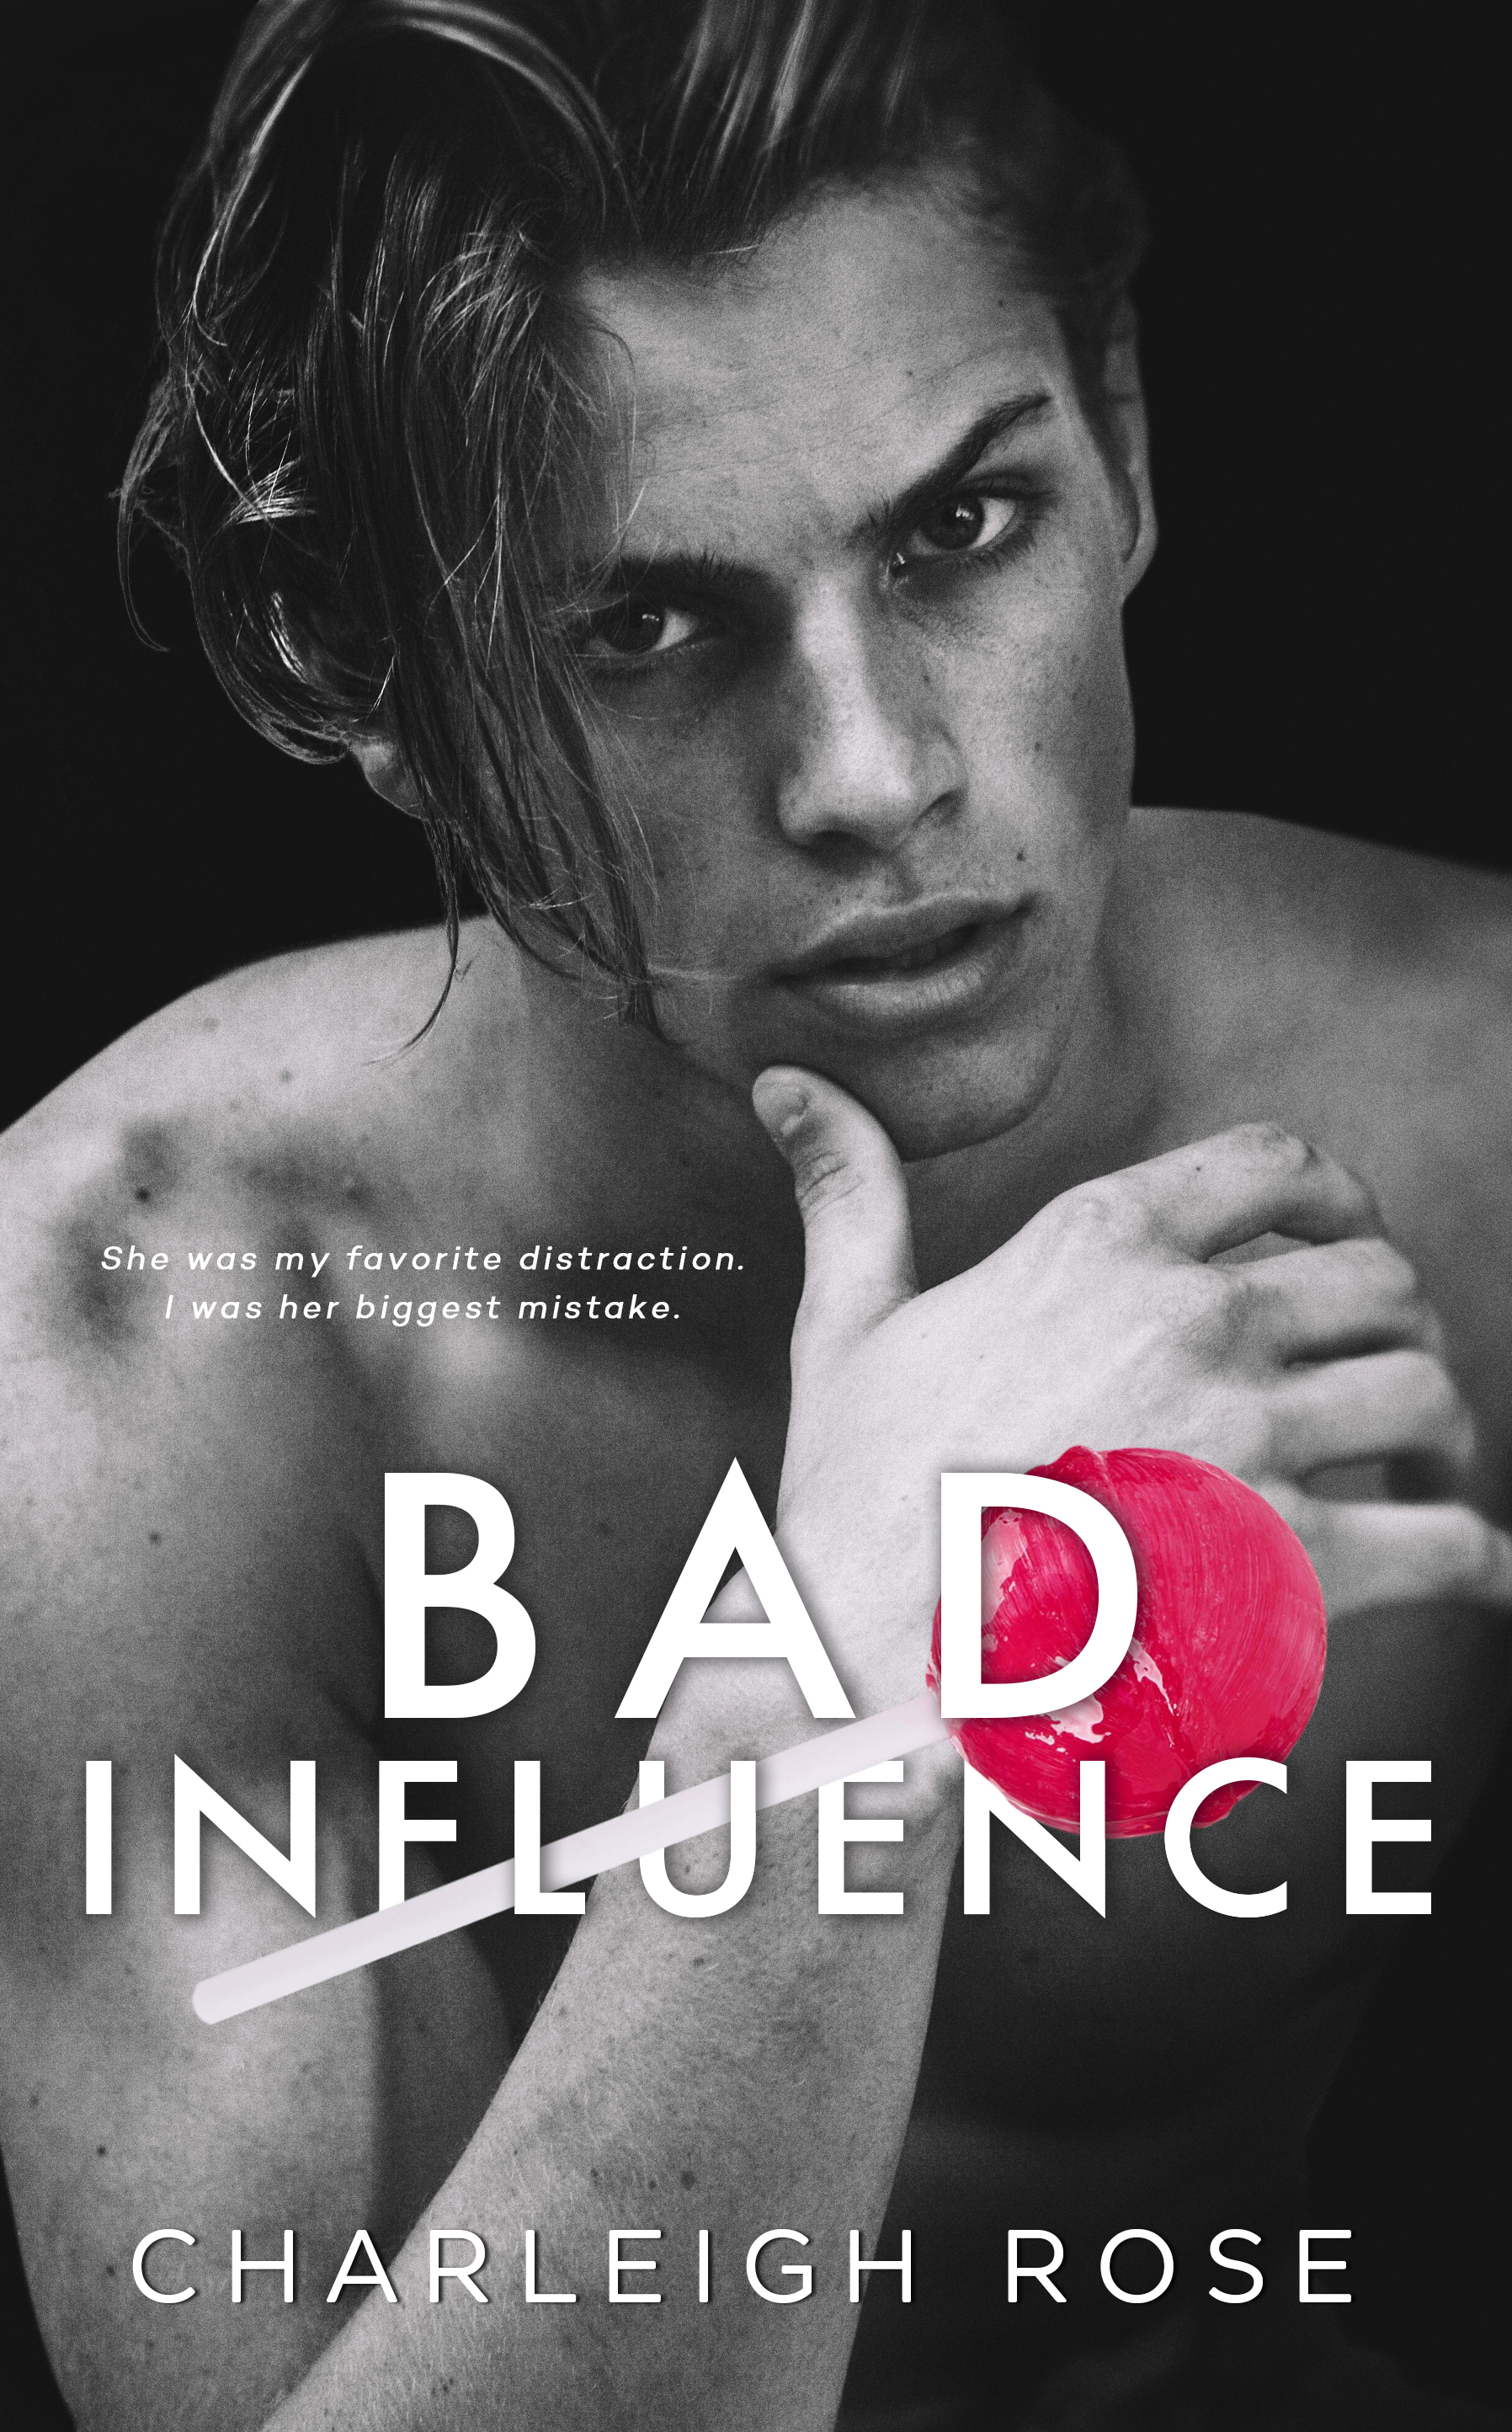 Bad Influence by Charleigh Rose Review